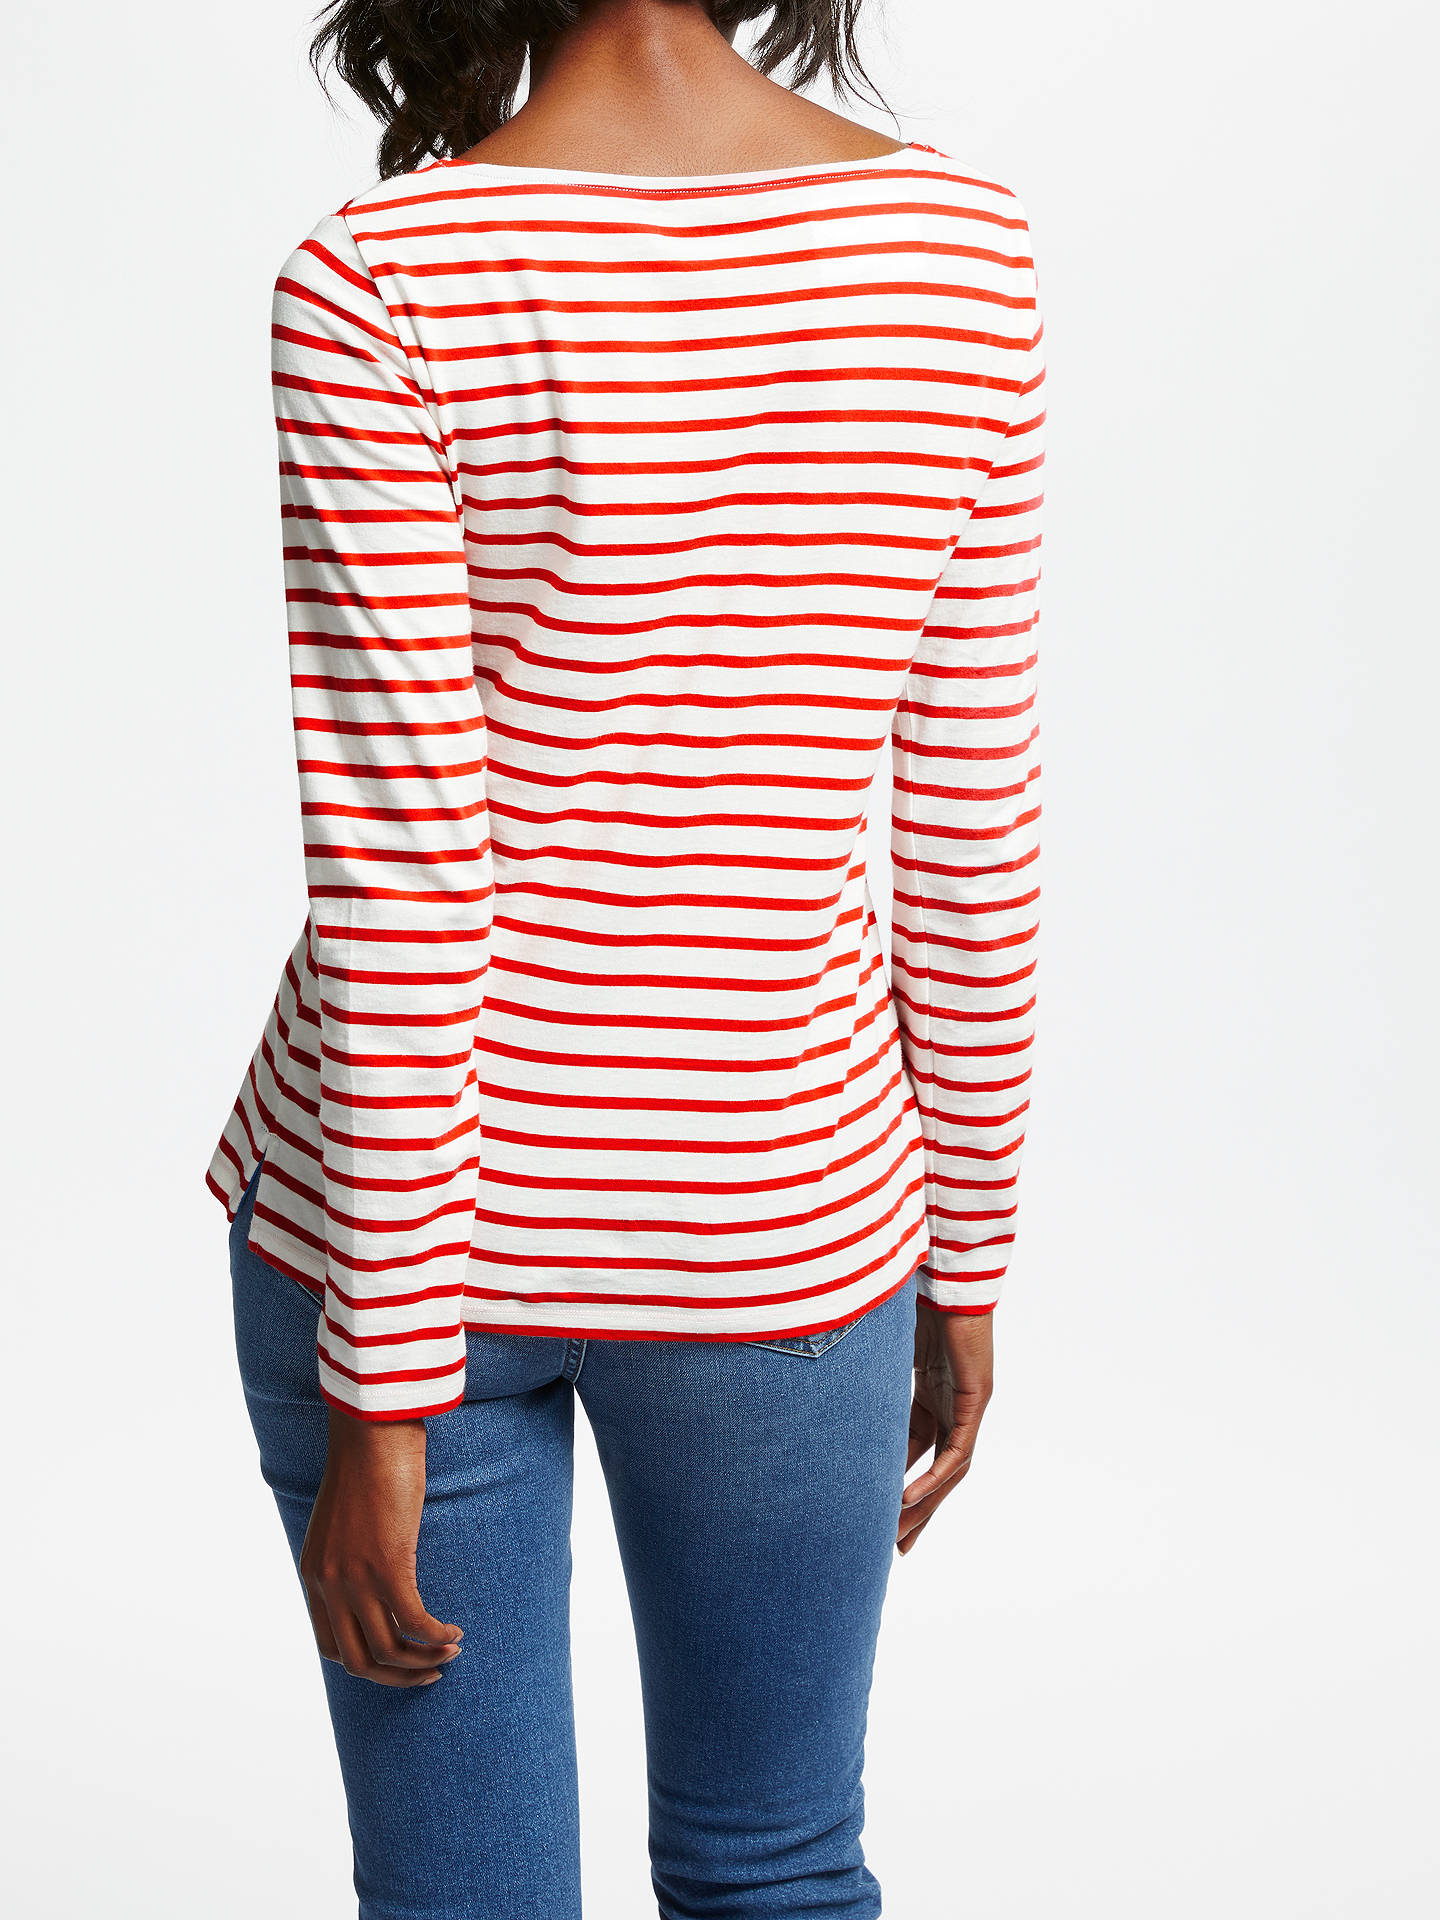 Buy Boden Make A Statement Breton Top, Tres Groovy, 8 Online at johnlewis.com